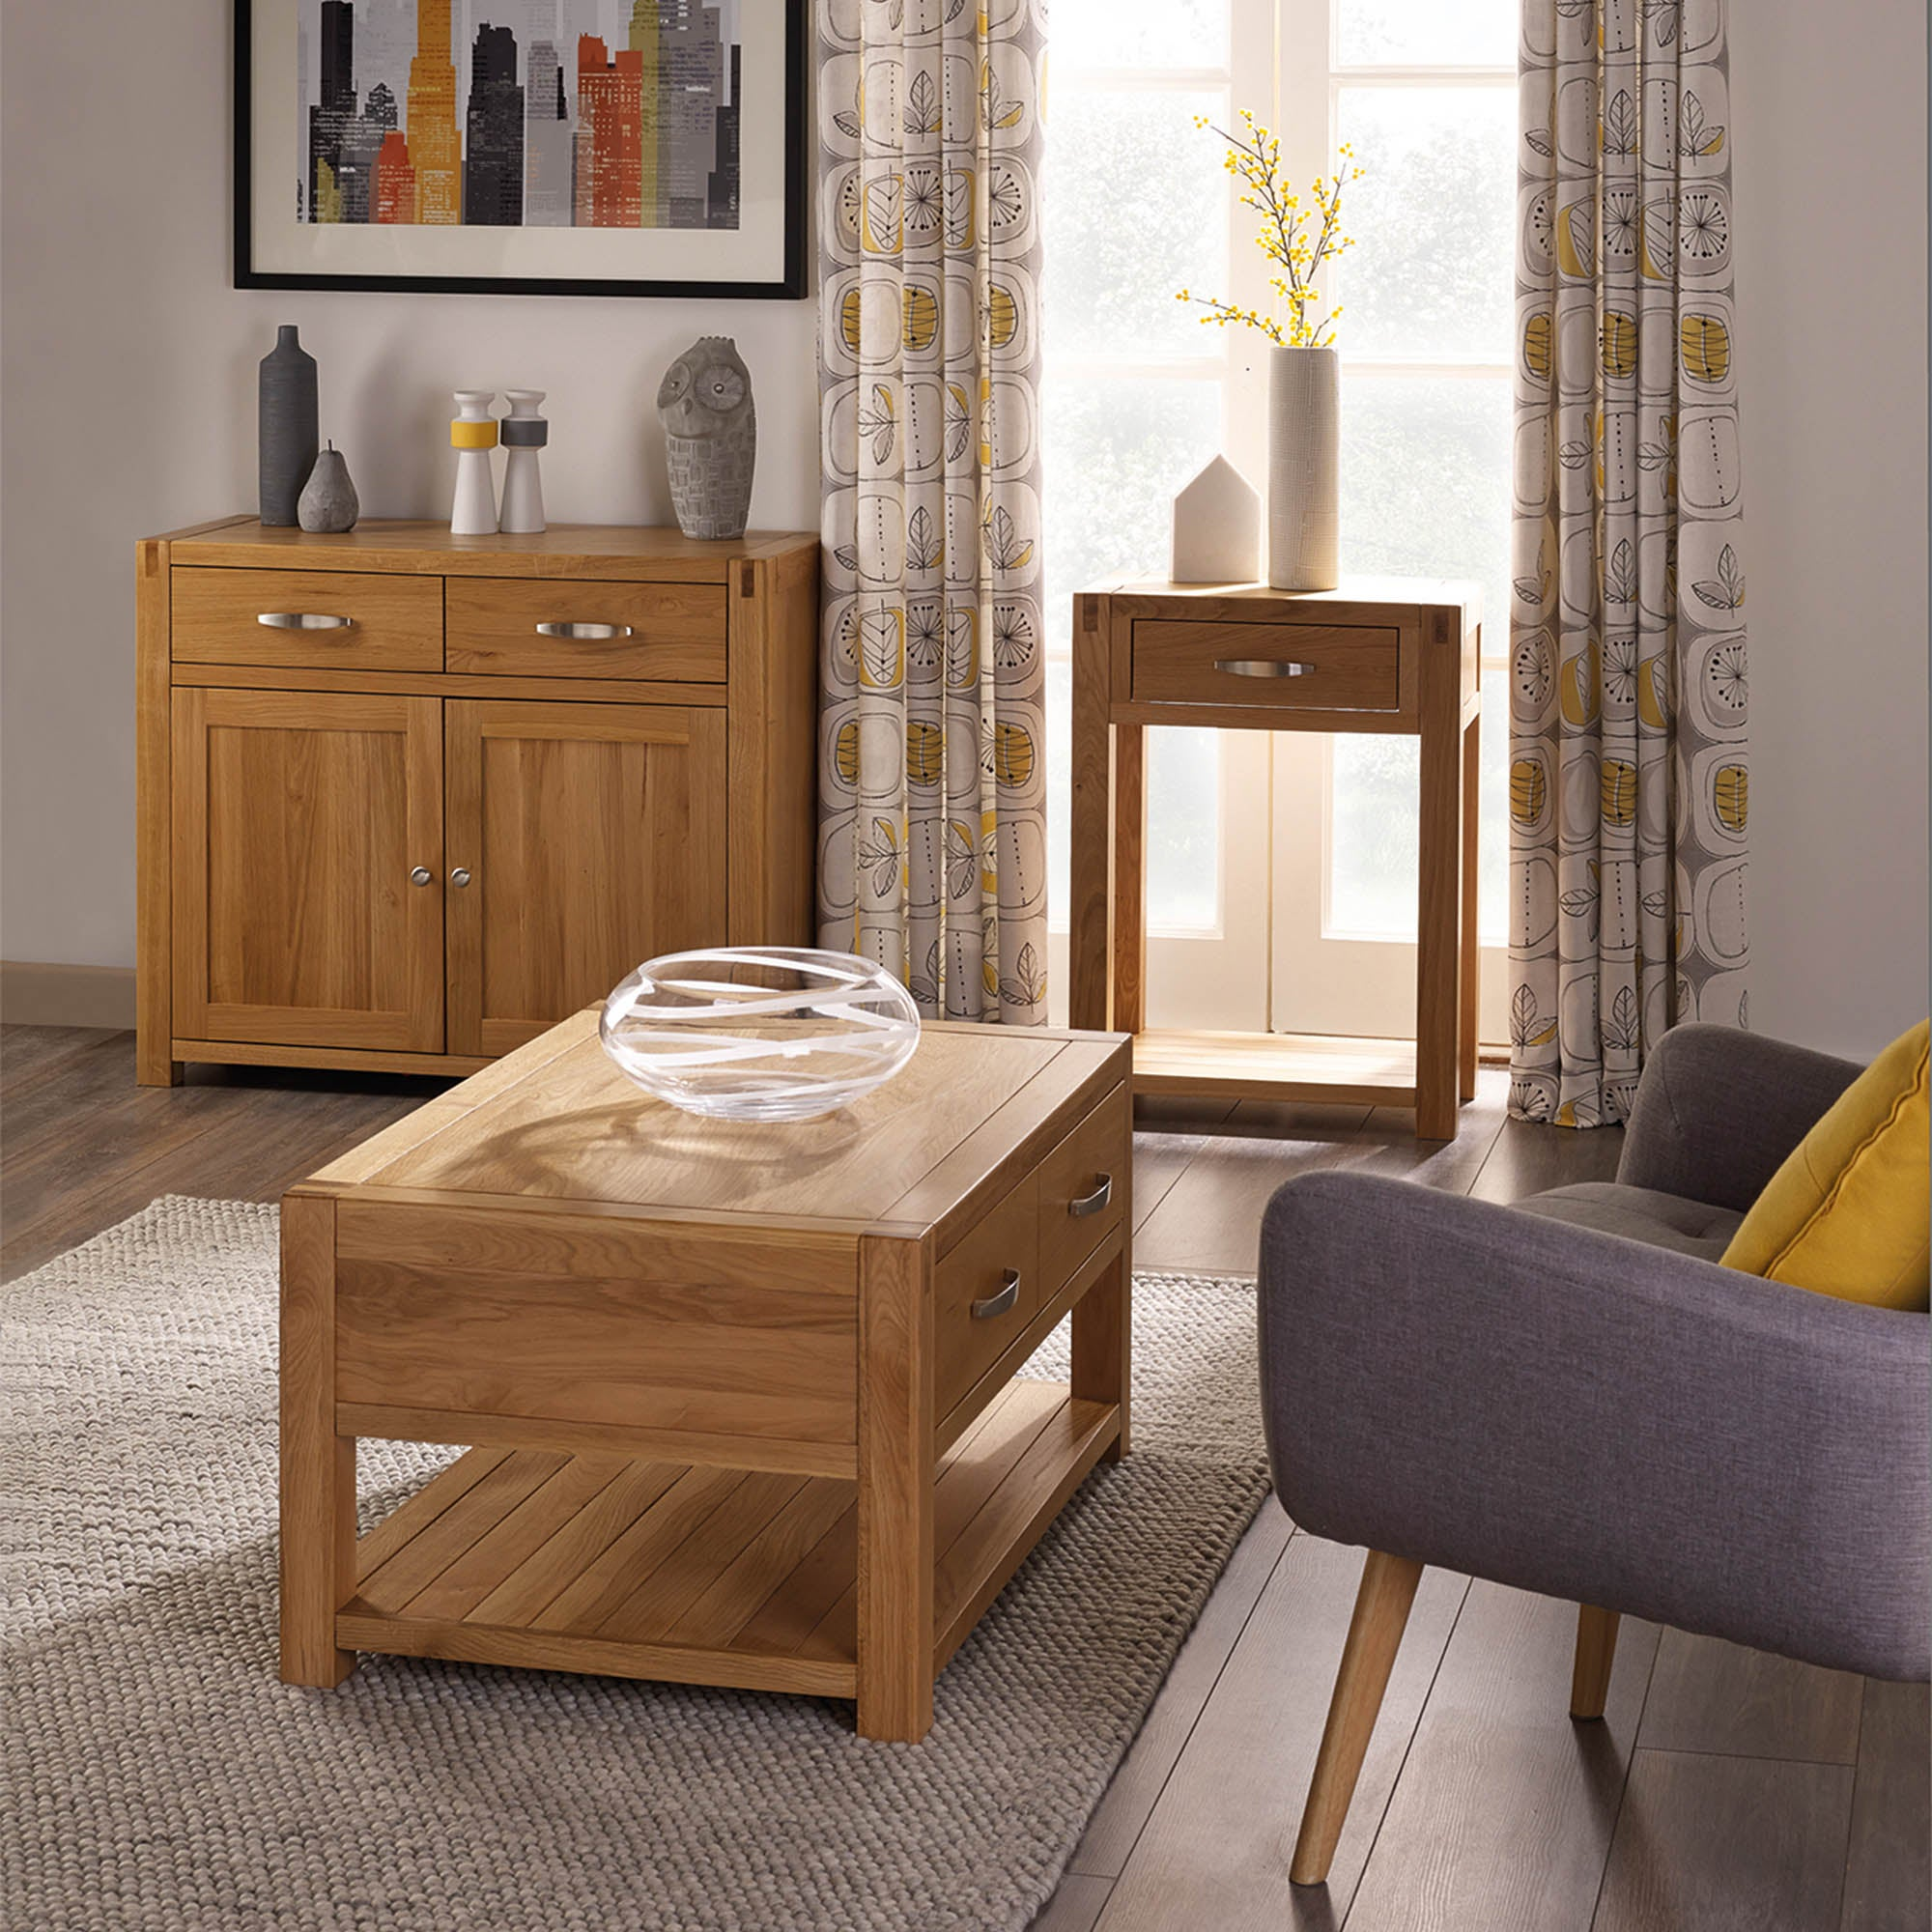 Hastings solid oak living room collection dunelm for Bedroom ideas with oak furniture